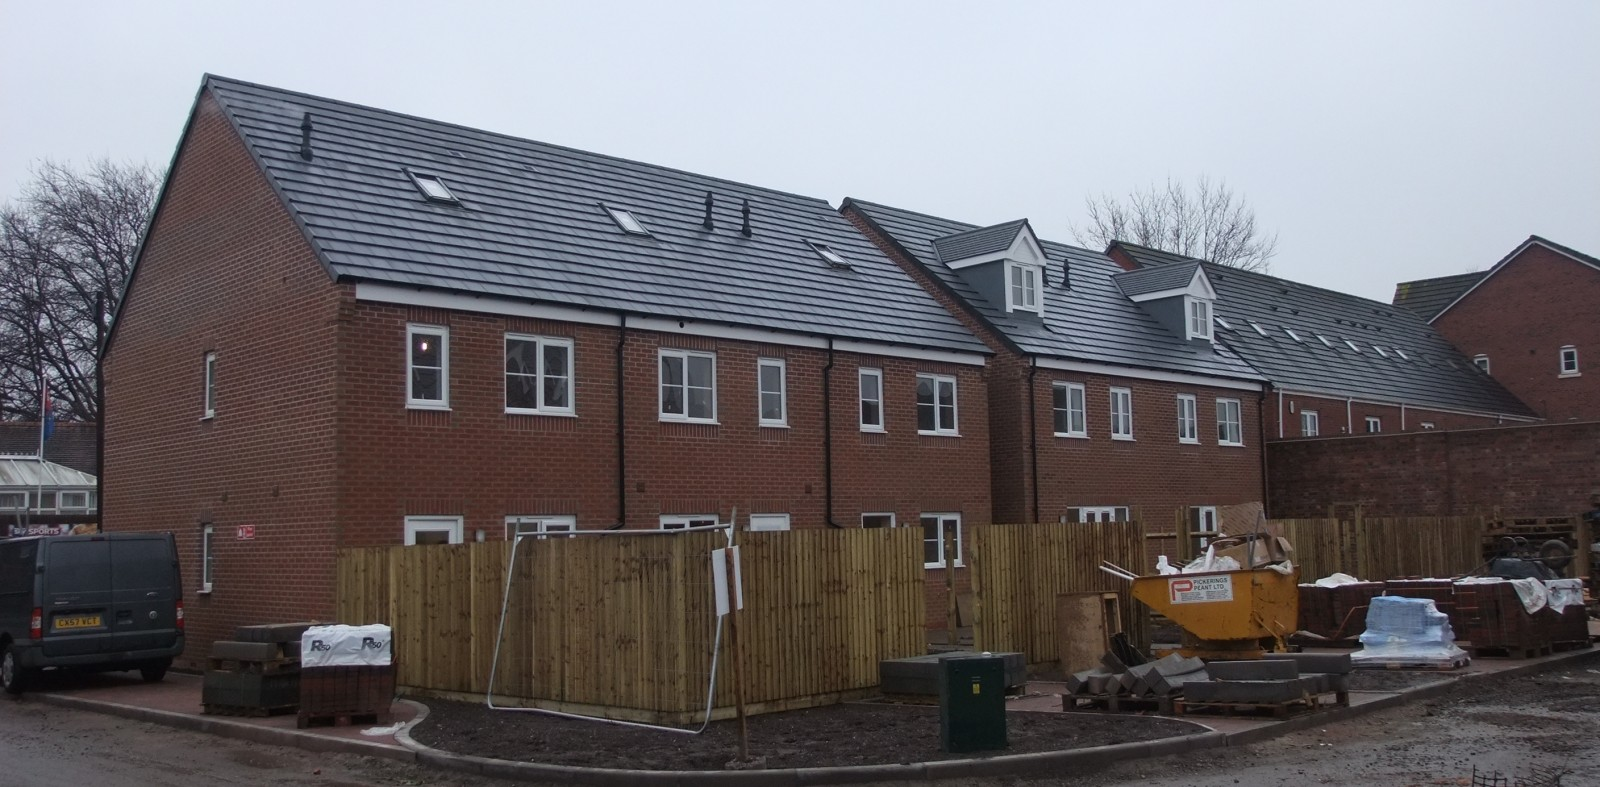 Scaffold removed around plots on the Aldermans Place development